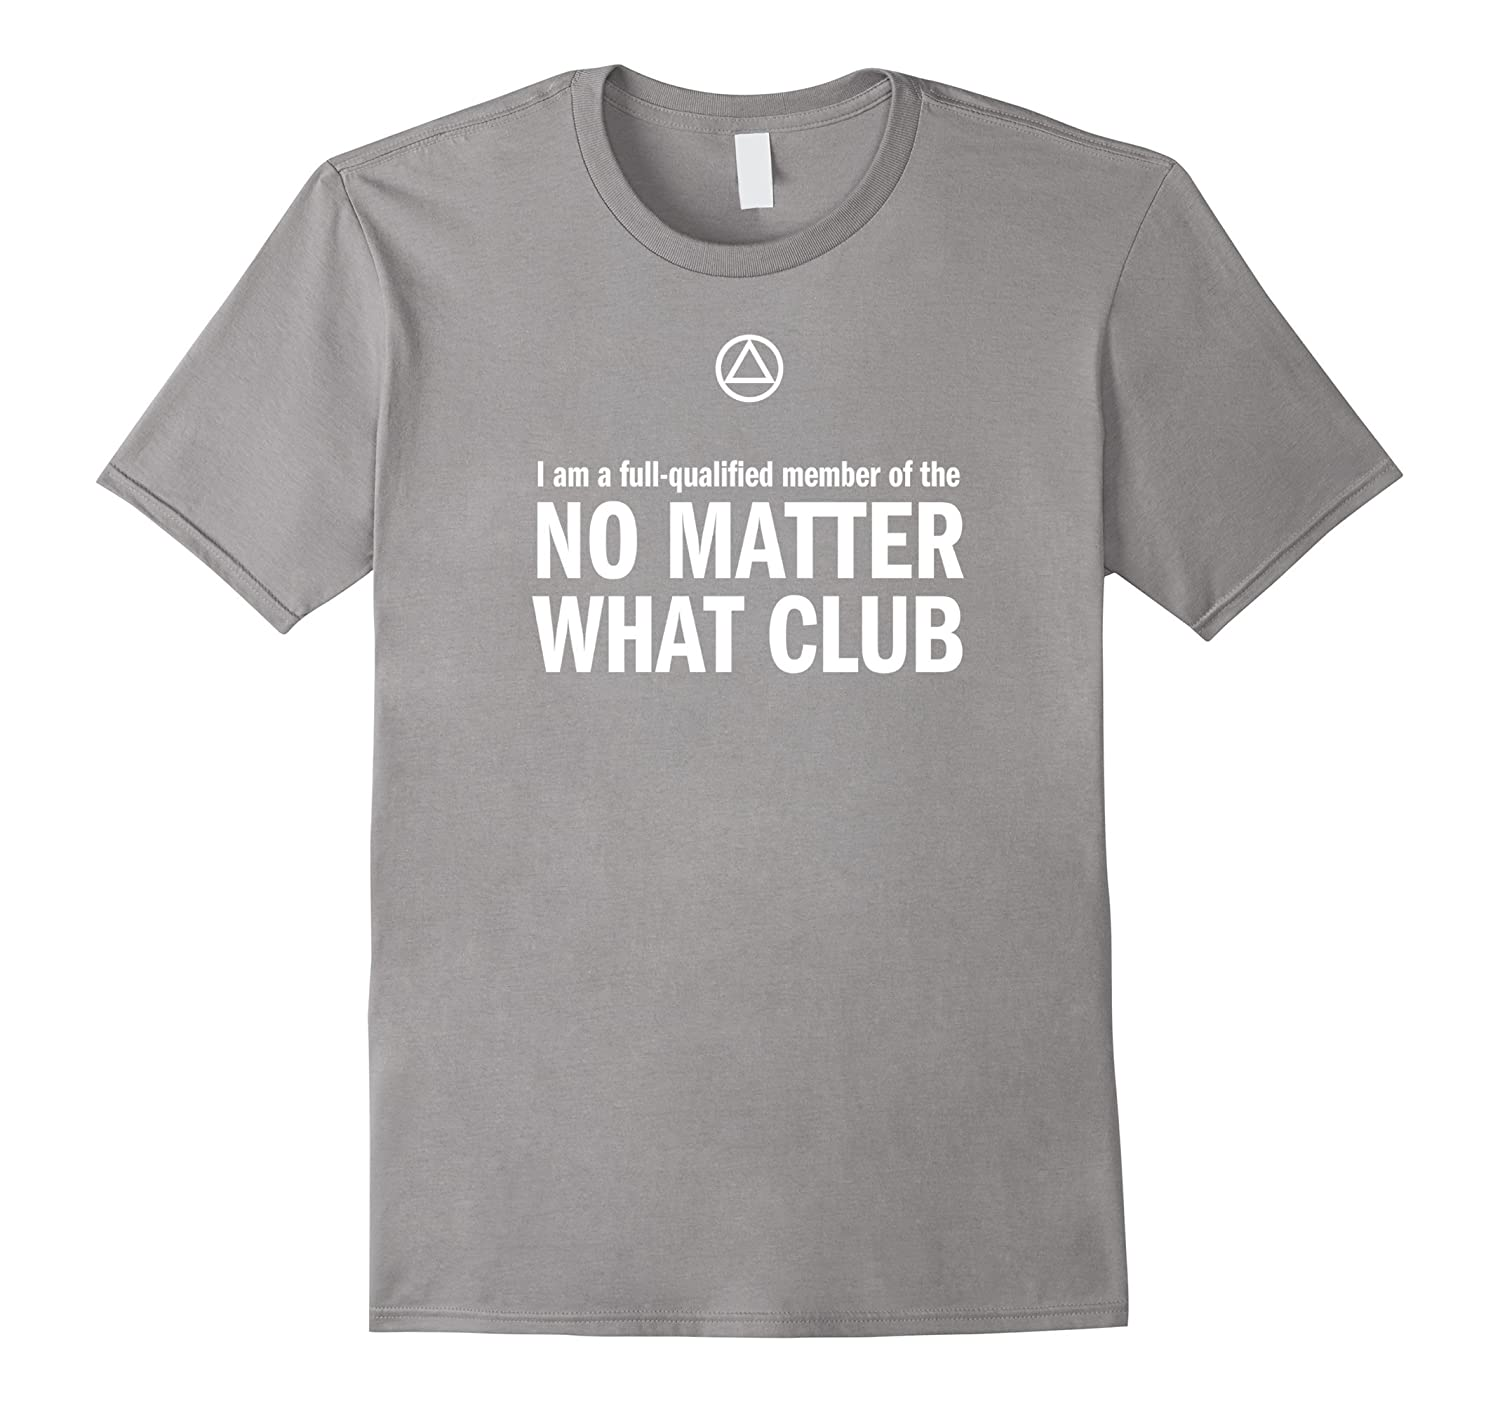 'Member Of The No Matter What Club' – Funny AA Recovery Tee